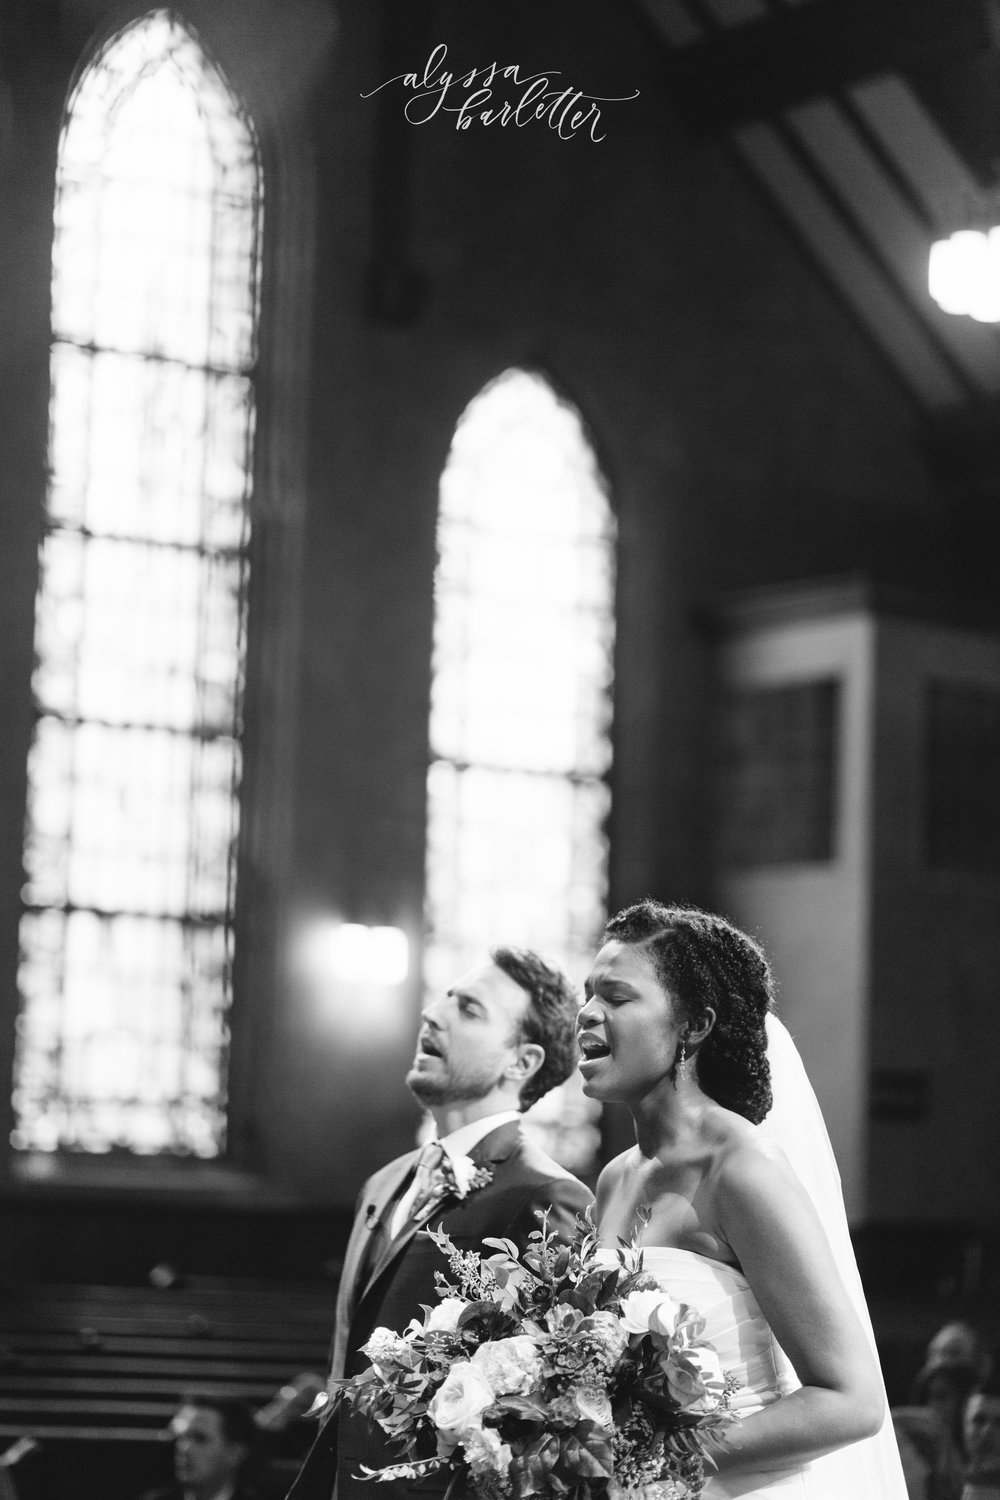 kansas city missouri wedding photographer christ community church bookside ceremony worship